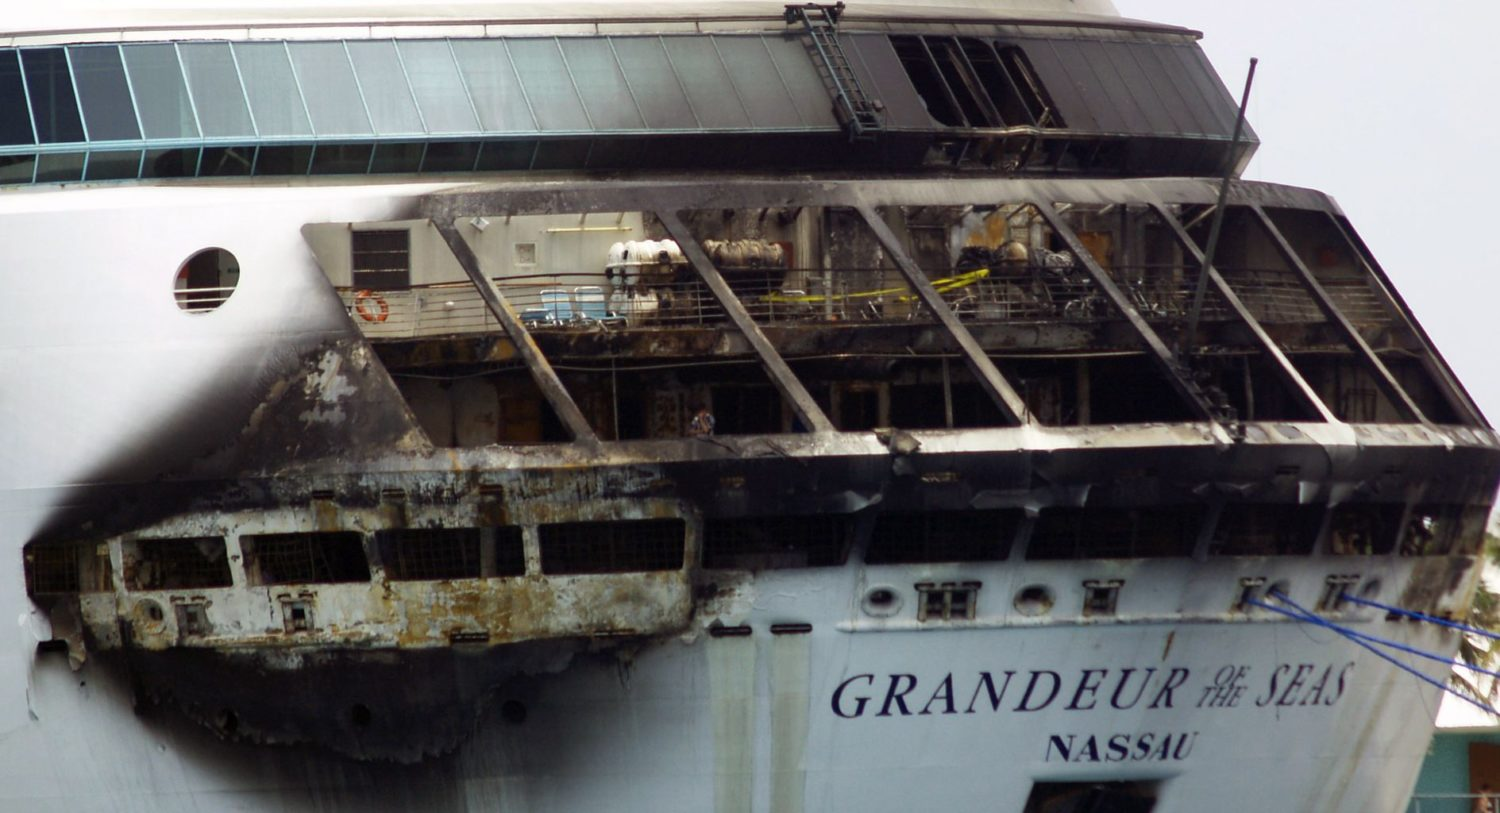 Royal Caribbean Cruise Ship Cancels Cruise Due To Fire - Cruise ship staff quarters